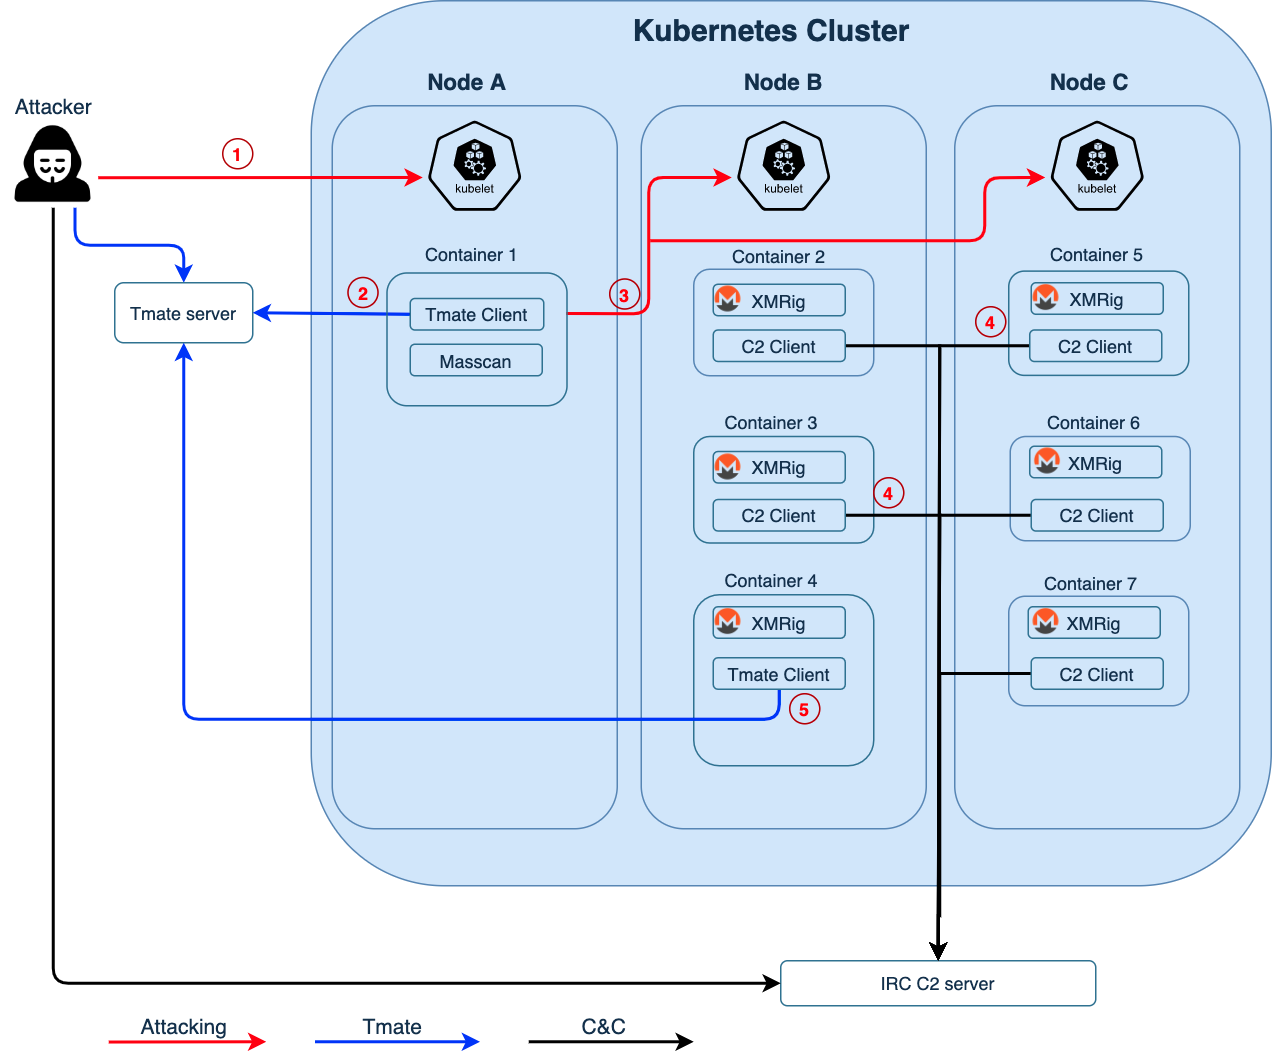 The figure shows the attacker's movements through a Kubernetes Cluster divided into nodes A, B and C. It shows the progression from attacking to the use of tmate to the use of an IRC C2 server.